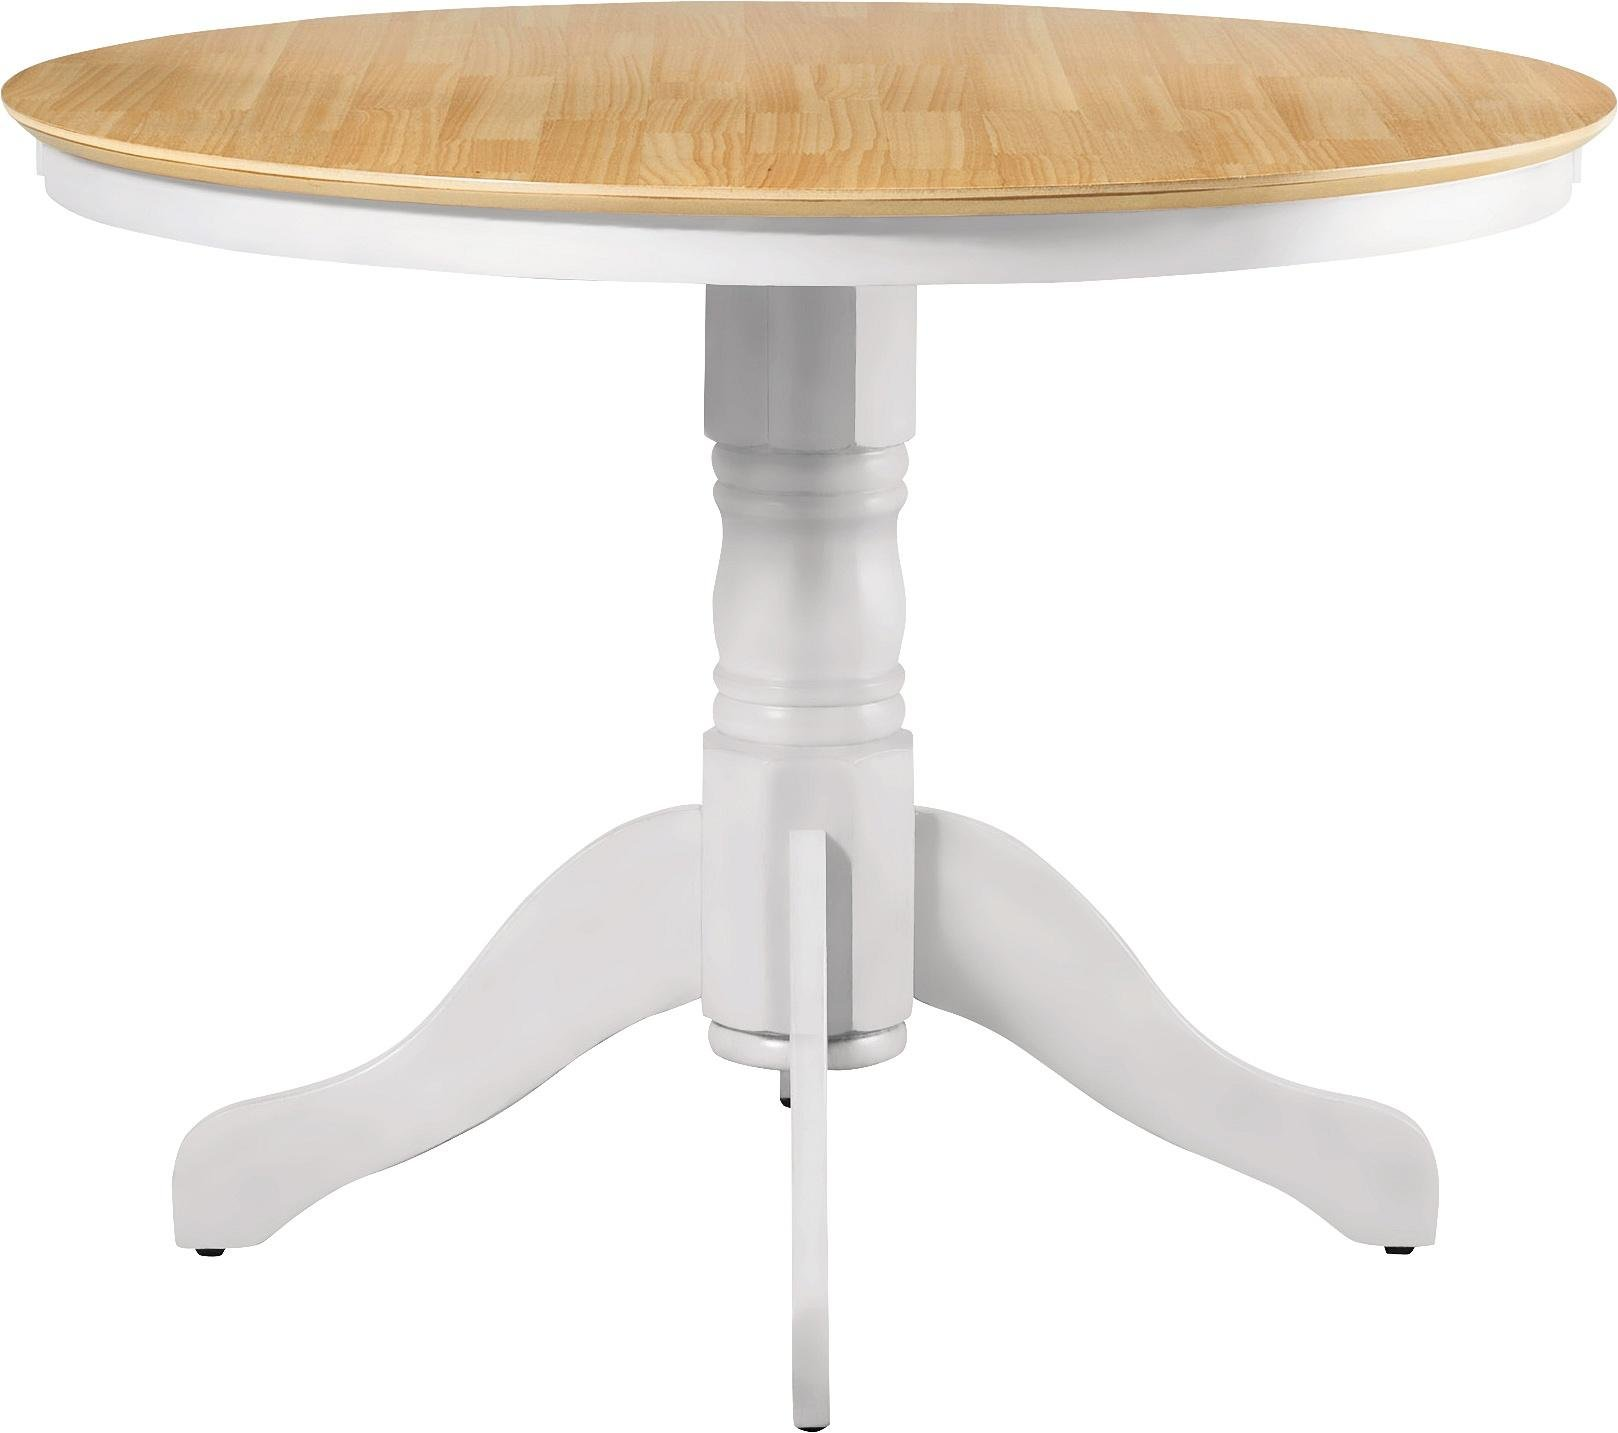 Collection Kentucky Round Dining Table Two Tone : 6038272RZ001AUC1516052 from cheapas.co.uk size 1618 x 1433 jpeg 77kB